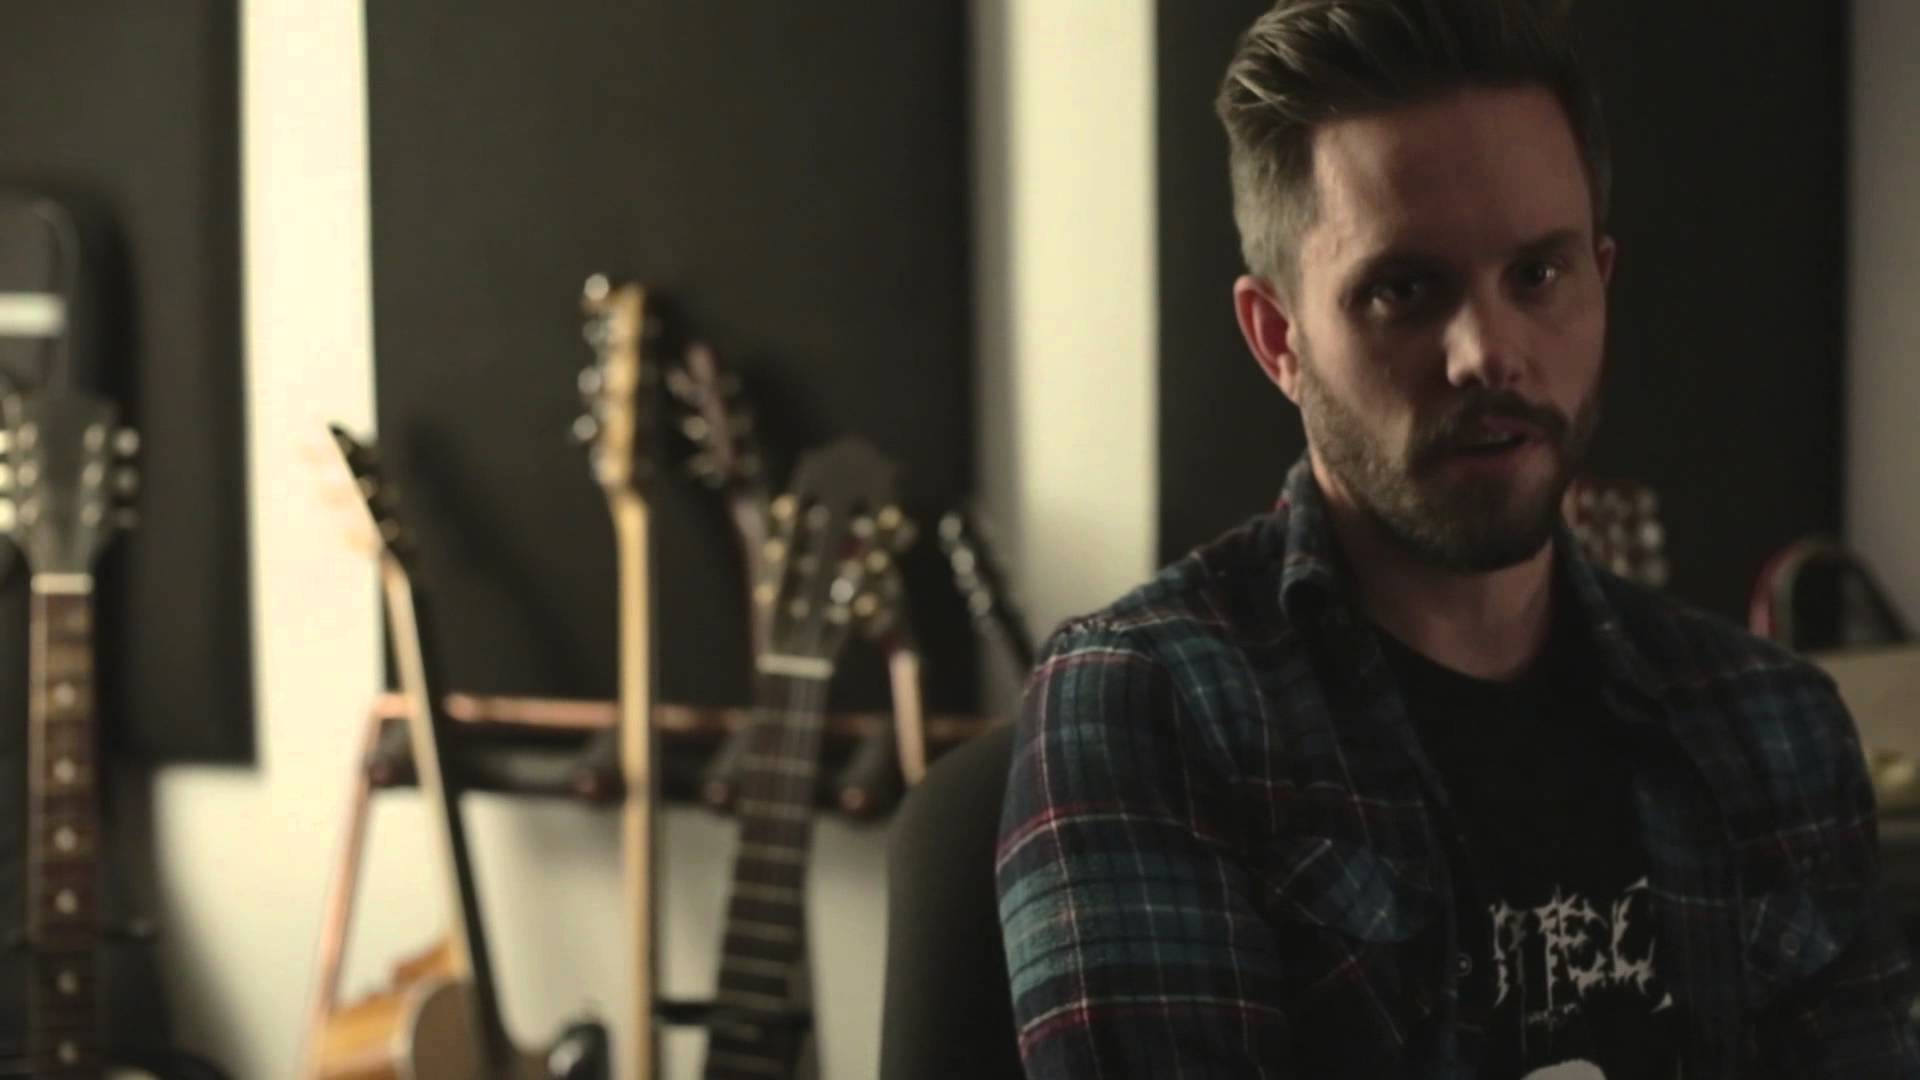 Between the Buried and Me 'Coma Ecliptic' concept - excerpt from the making of DVD